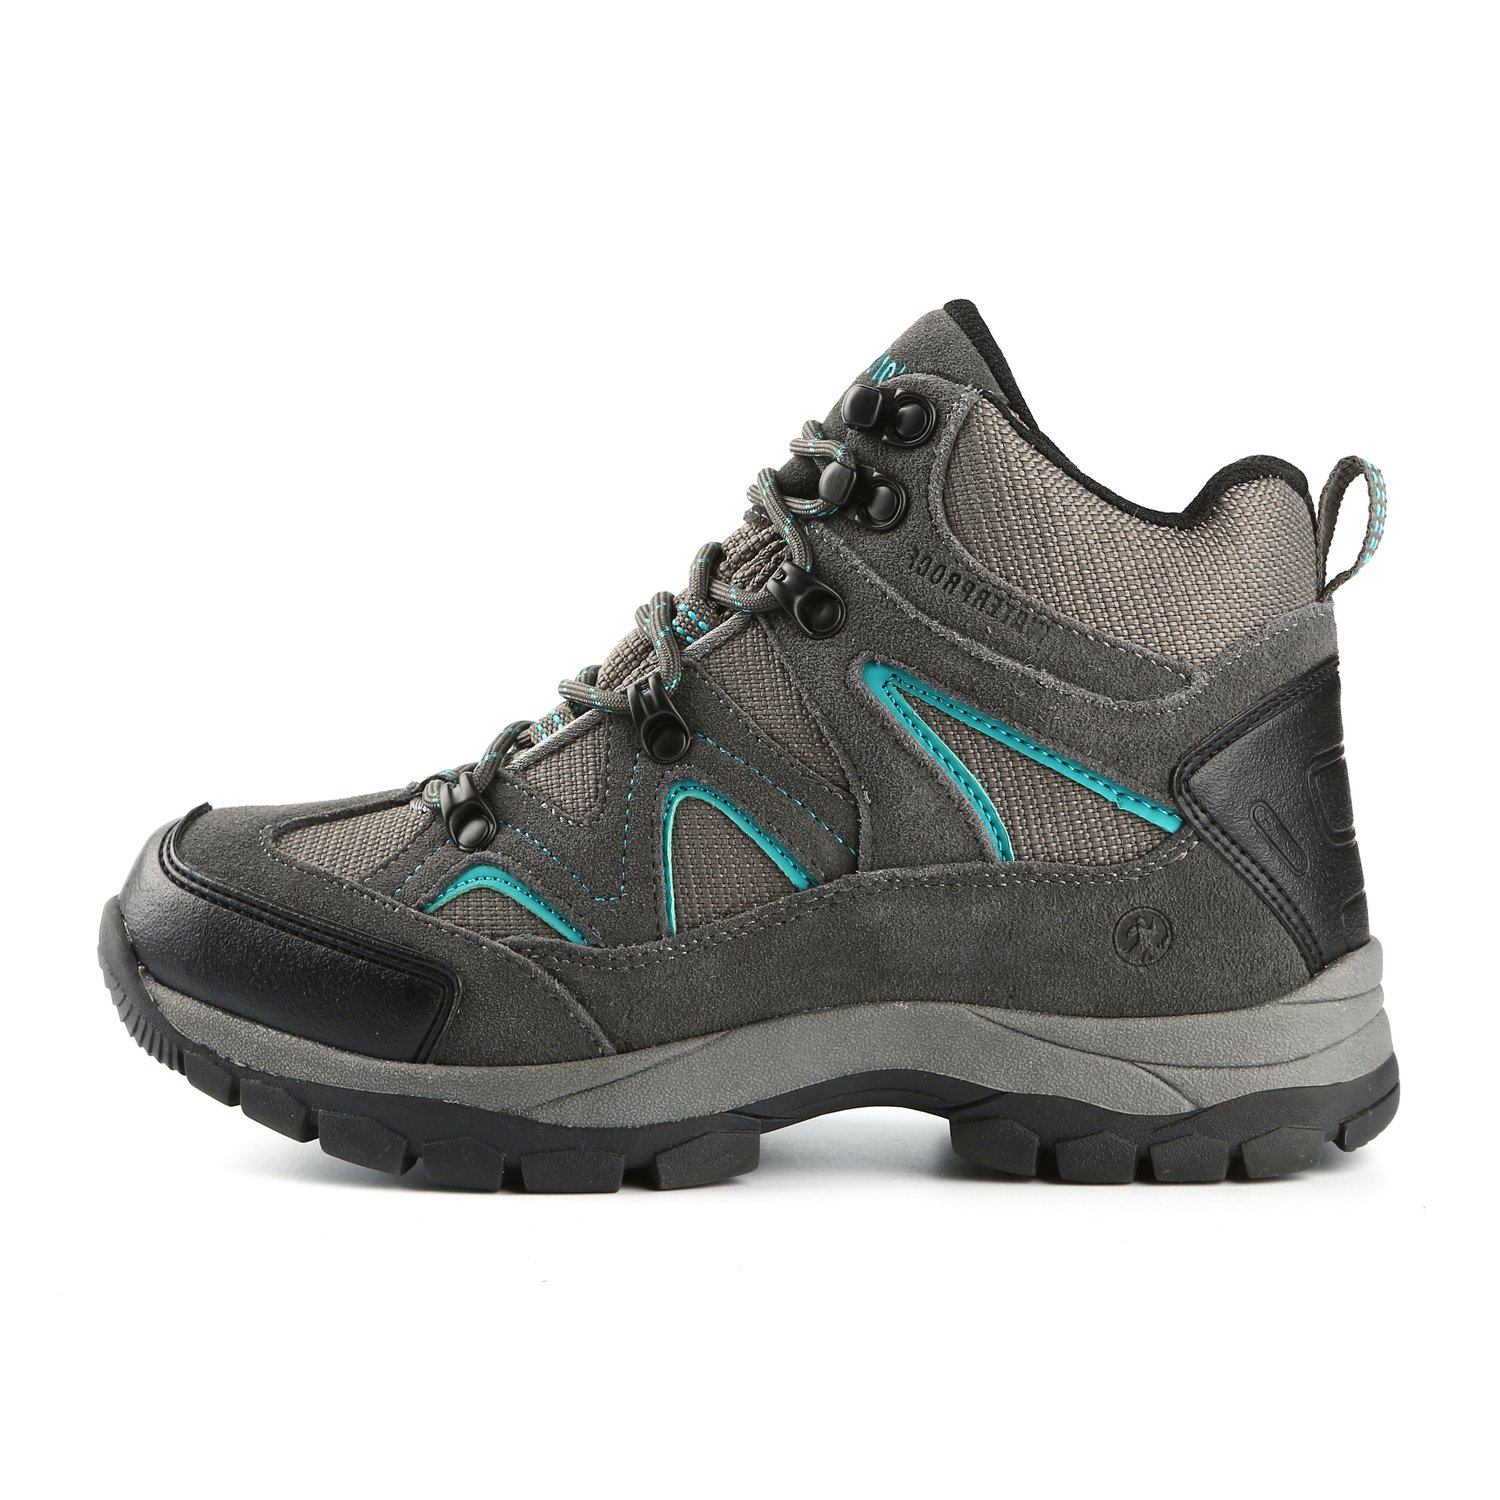 Northside Women's Snohomish Waterproof Hiking Boot B0737QH6T6 8.5 B(M) US|Dk Gray/Dk Turquoise